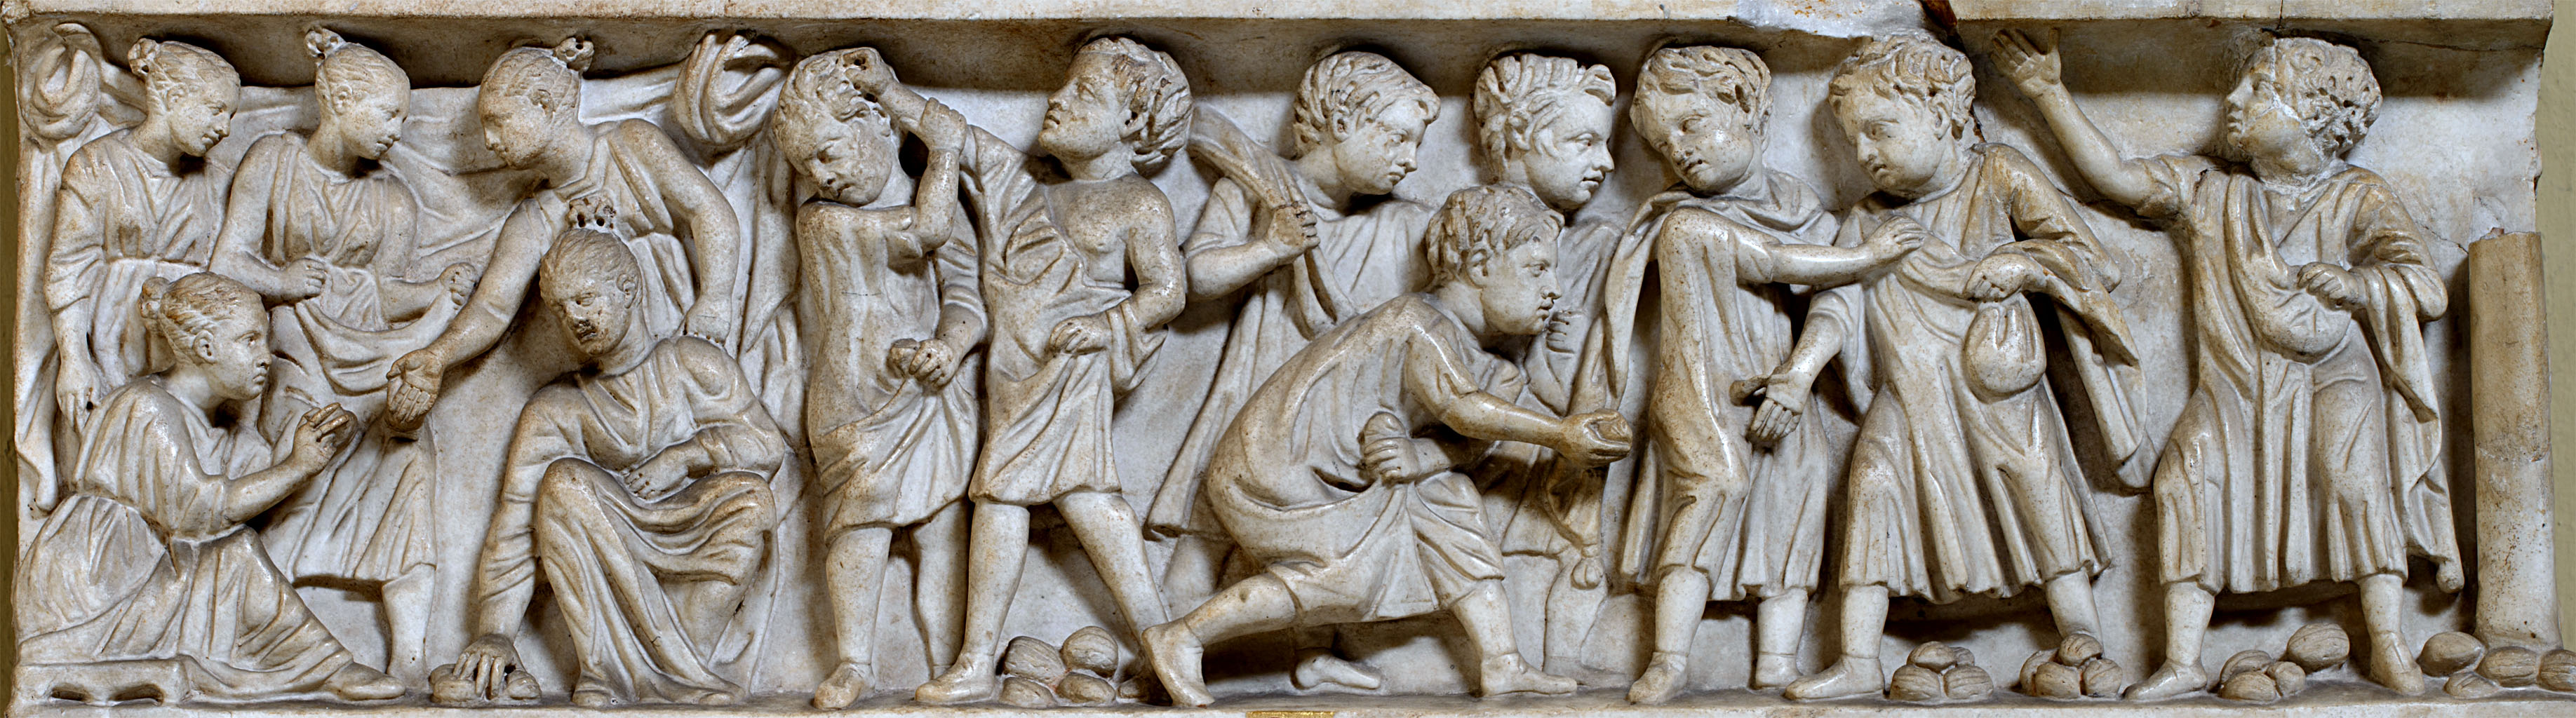 Sarcophagus of a child. Marble. Mid-3rd cent. CE. Inv. No. 1304. Rome, Vatican Museums, Chiaramonti Museum, VII. 21